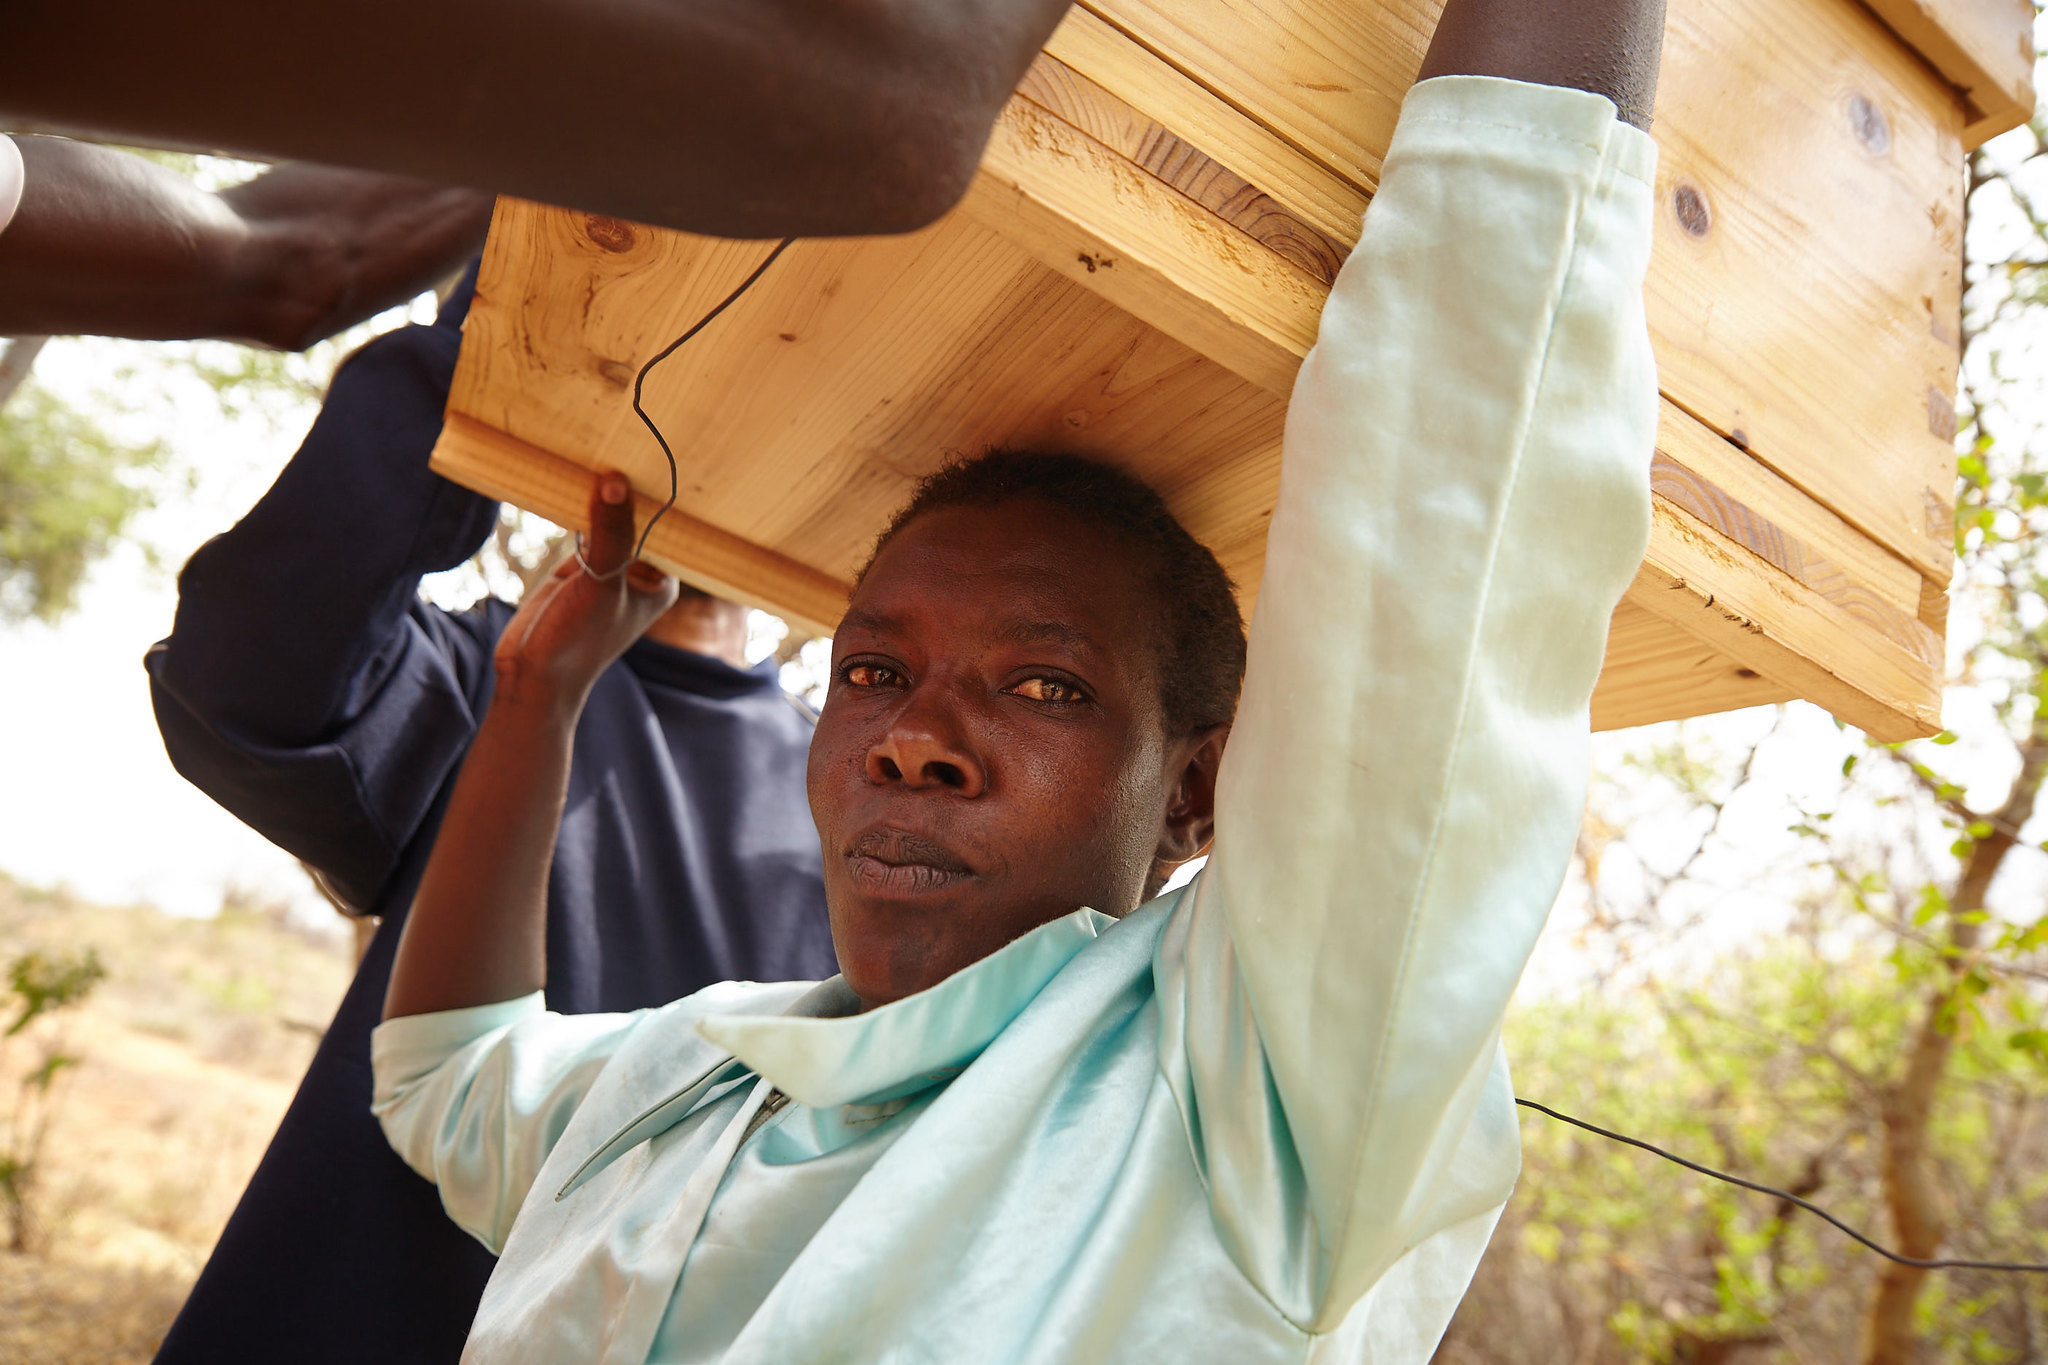 Jane Ngugi (34) joined a Trócairebee keeping group and the project has provided her with a vital source of extra income ever since. She hails from one of the driest parts of Embu County, Kenya.